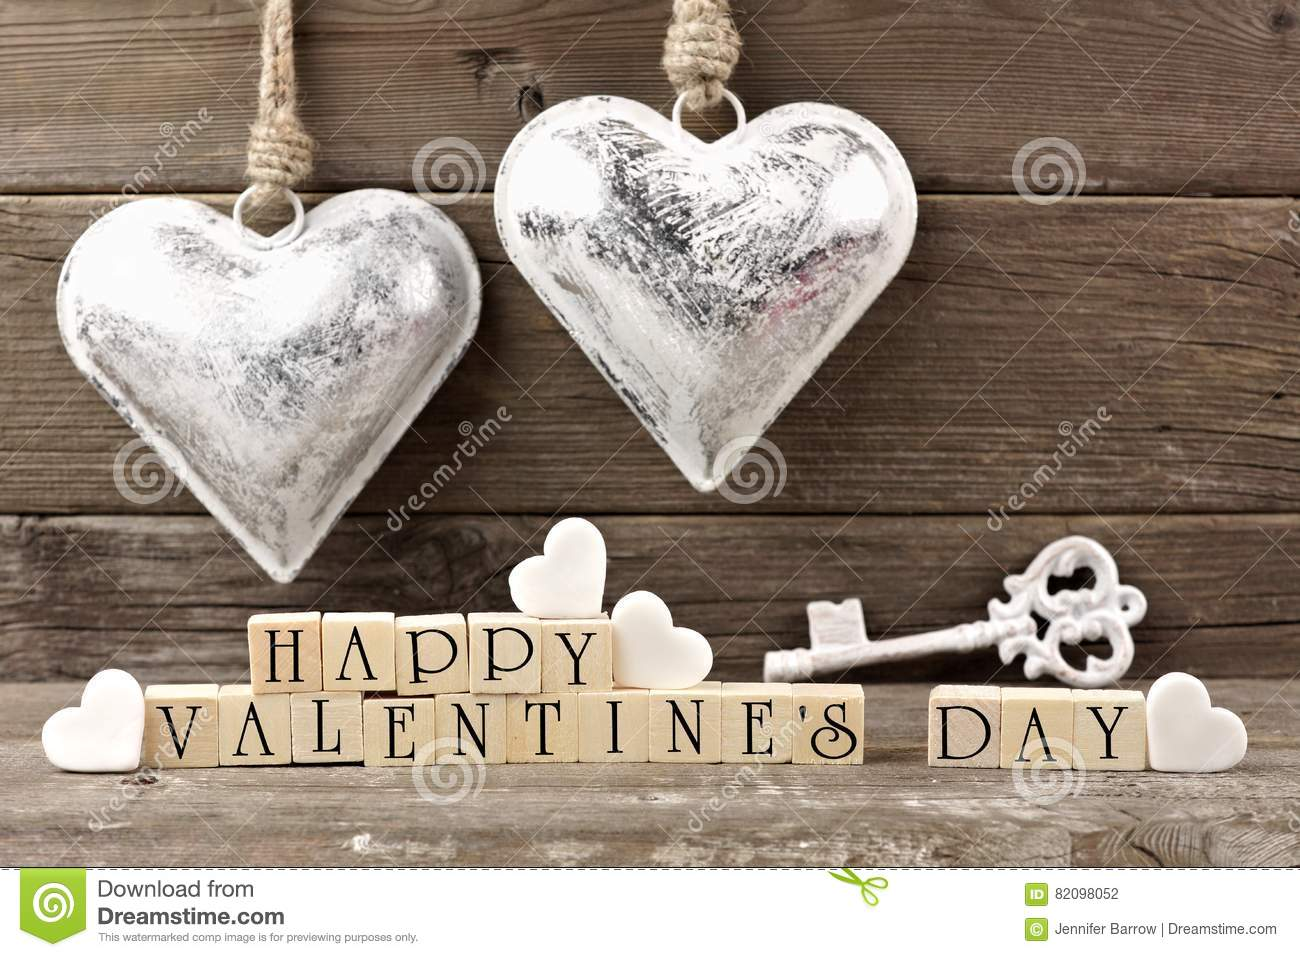 Happy Valentines Day Wooden Blocks With Vintage Decor Against Wood